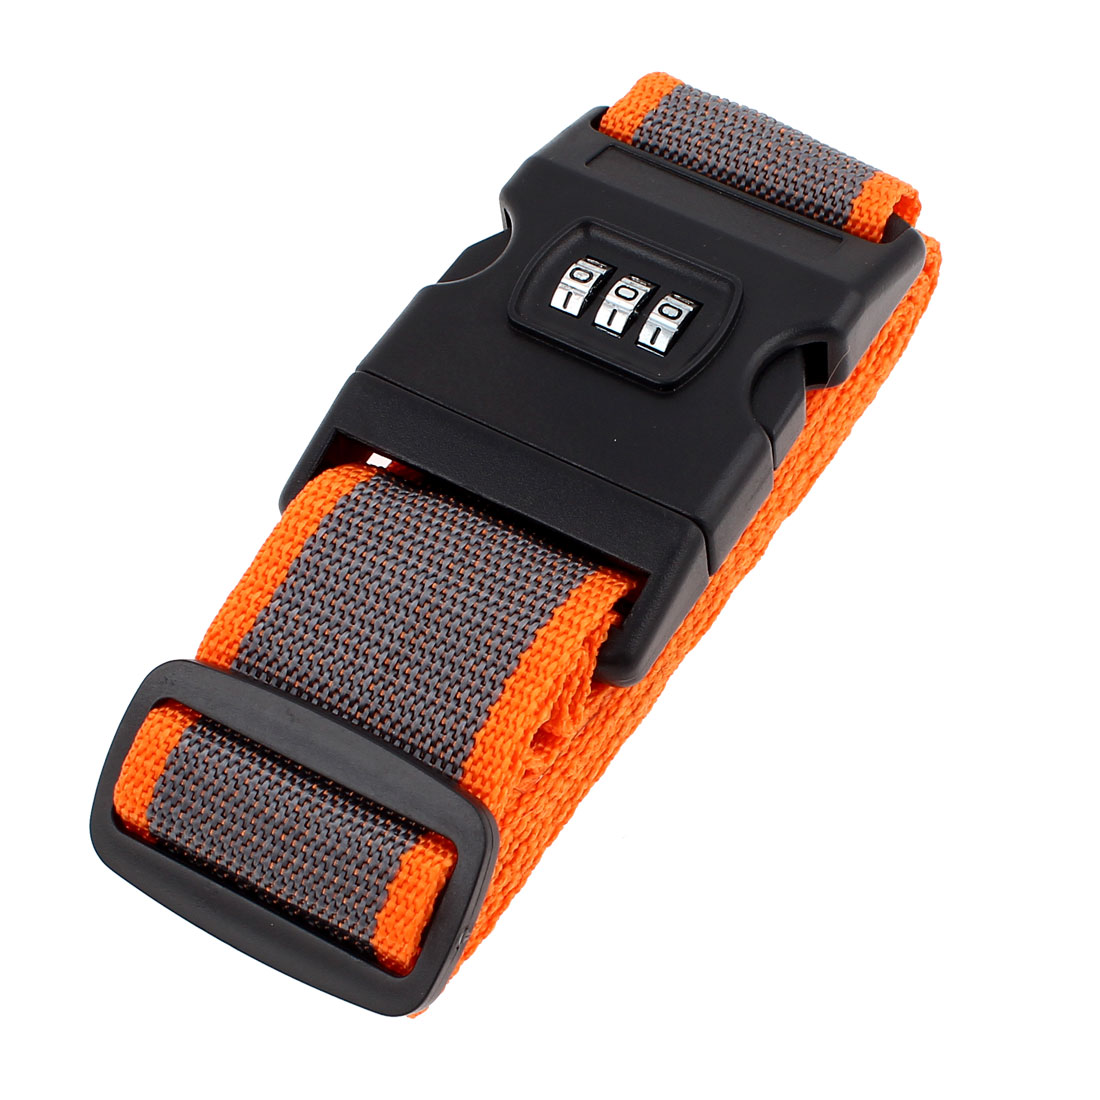 Release Buckle 3 Digits Password Combination Luggage Strap Orange Gray 2M Long